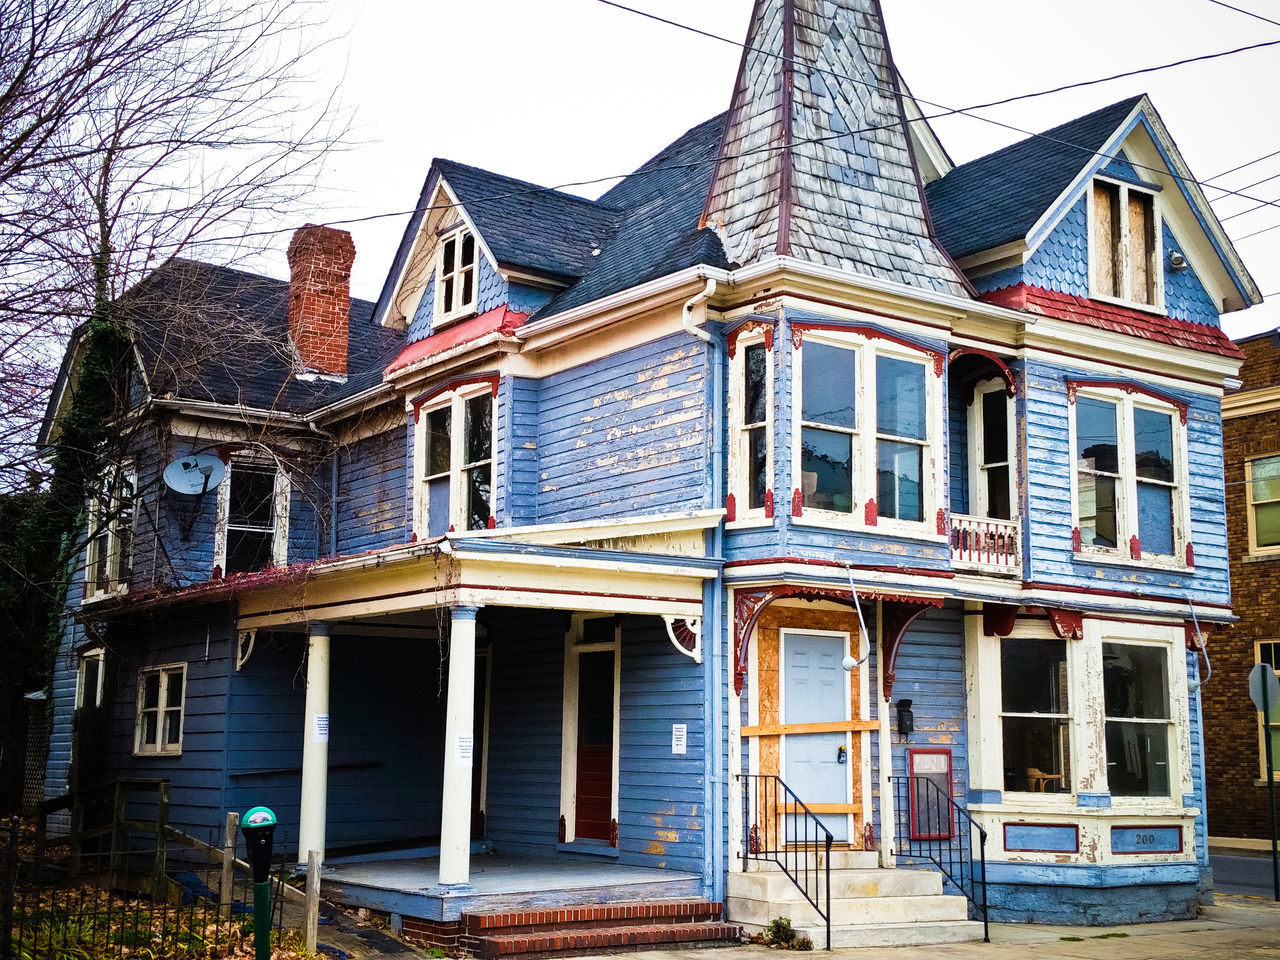 Architecture Blue House Damaged Deterioration Martinsburg Old Old House Victorian House